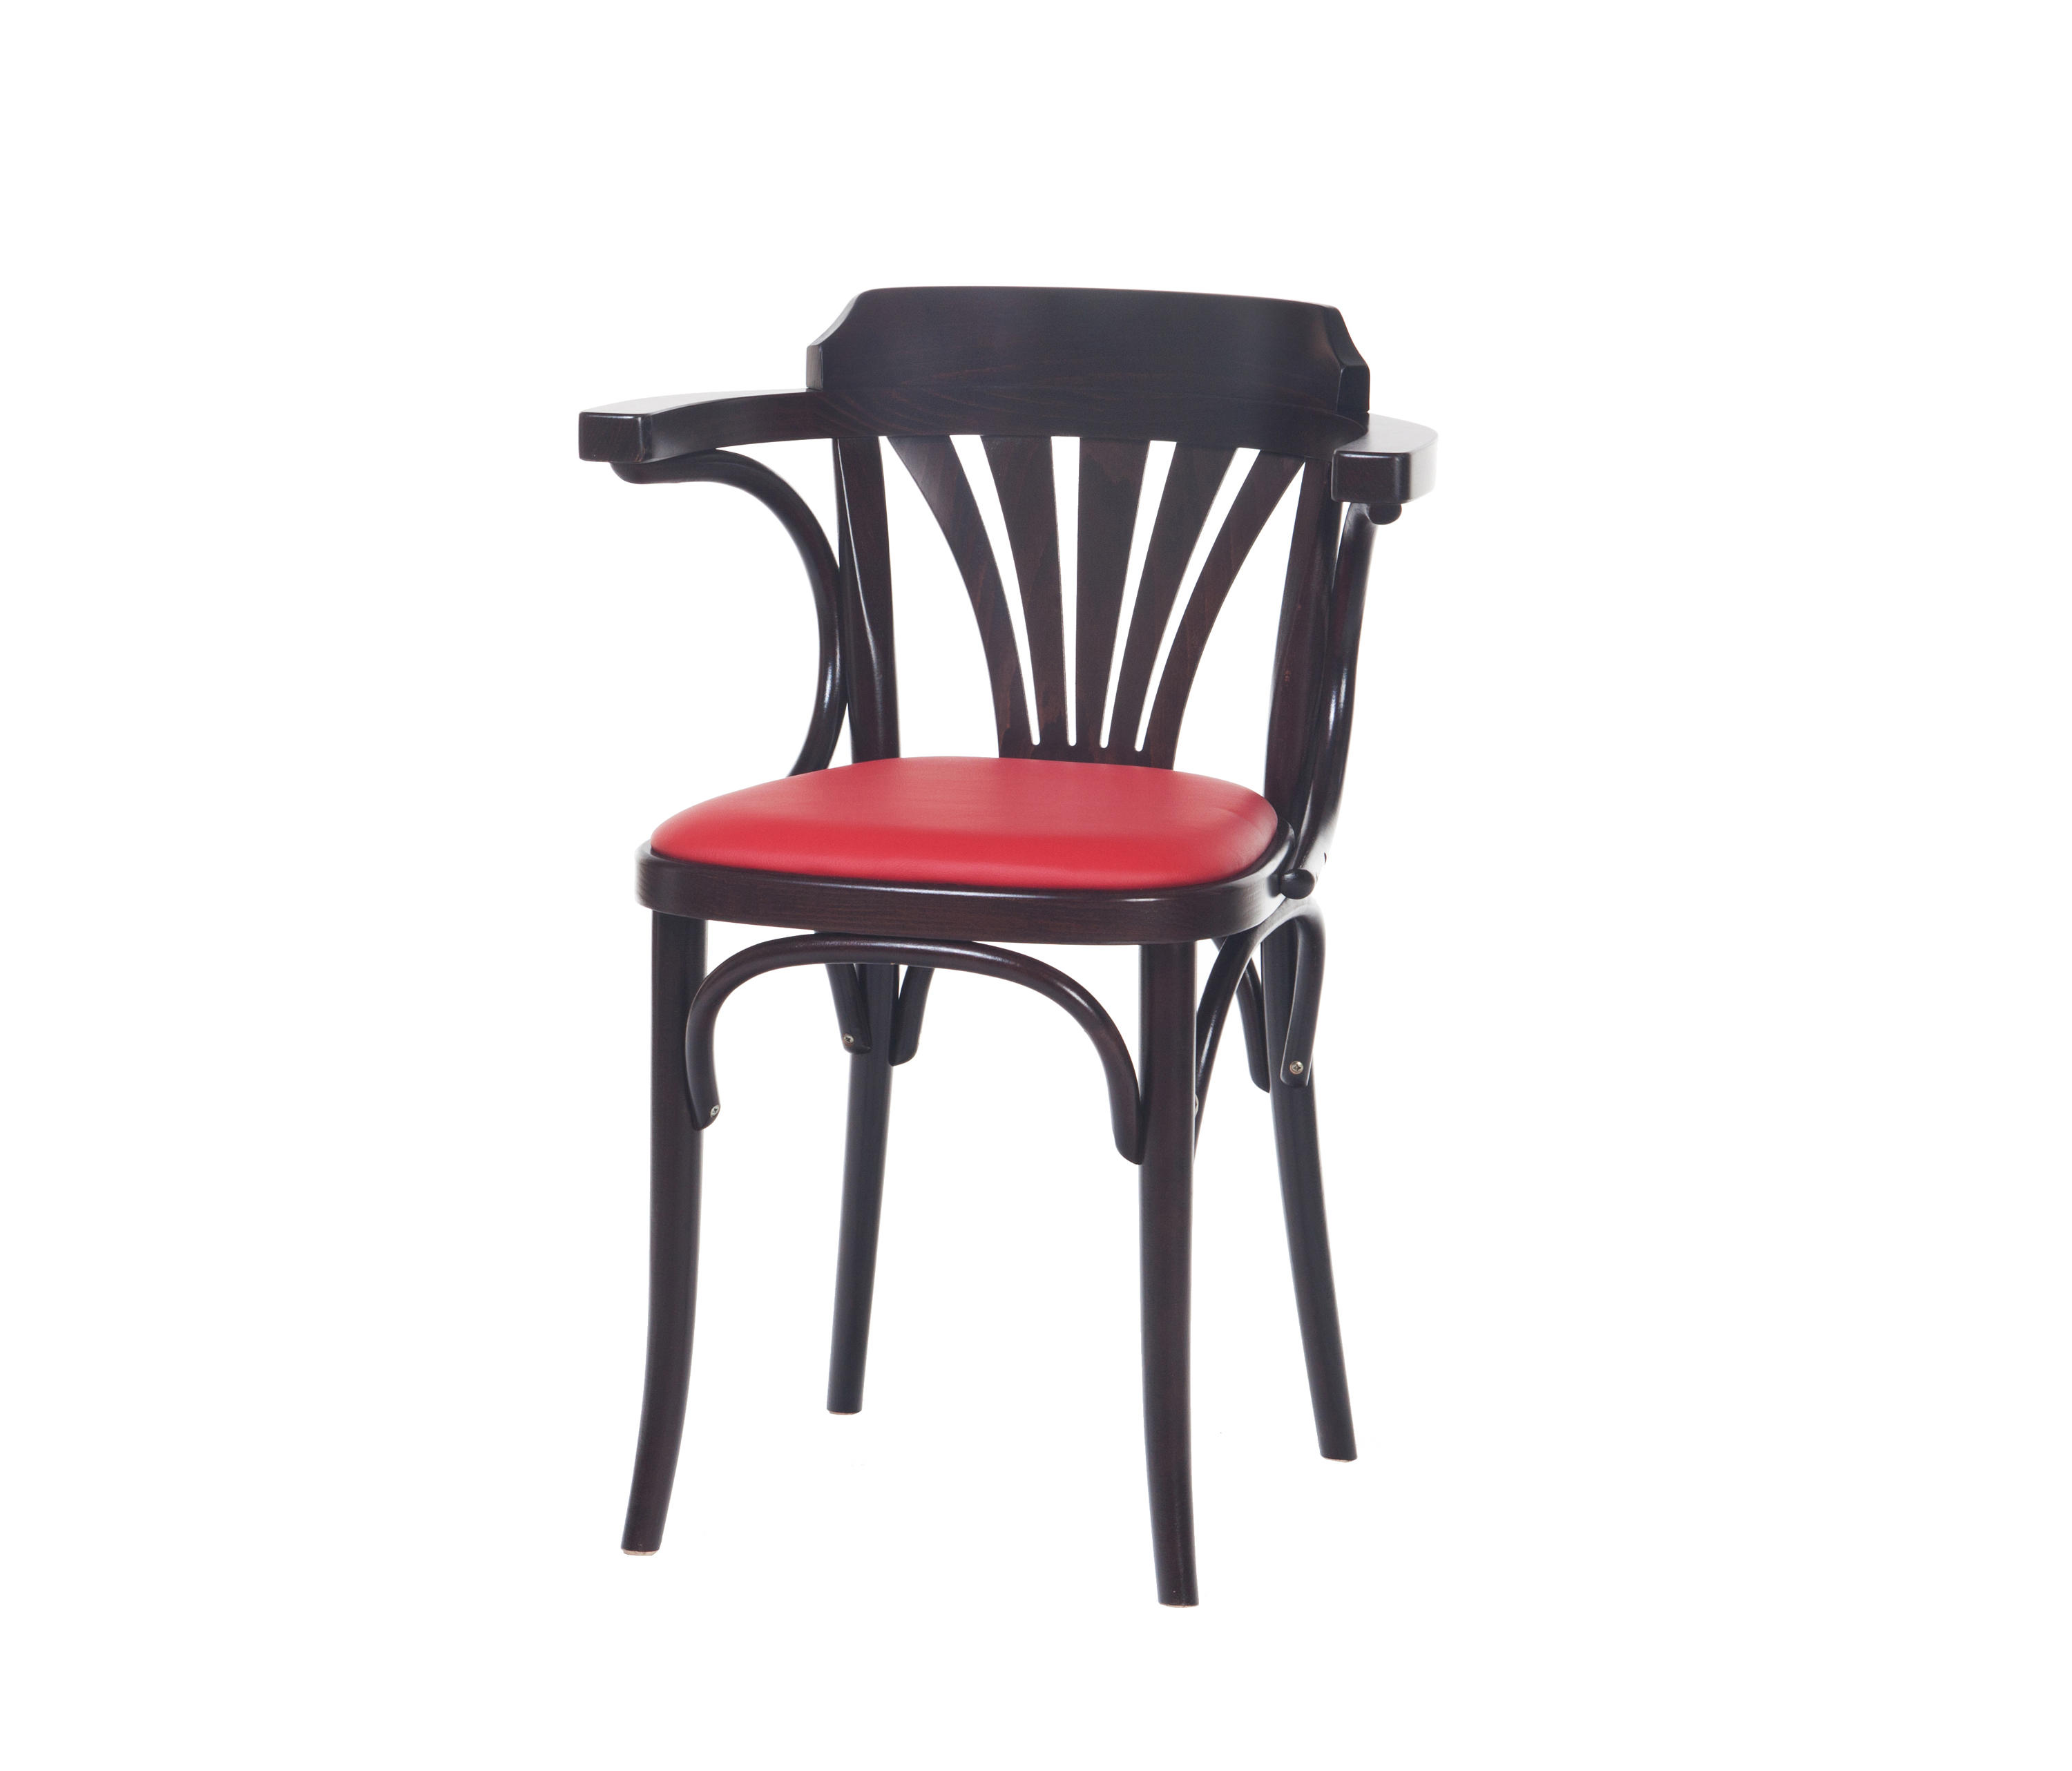 Charmant 24 Chair Upholstered By TON | Chairs ...